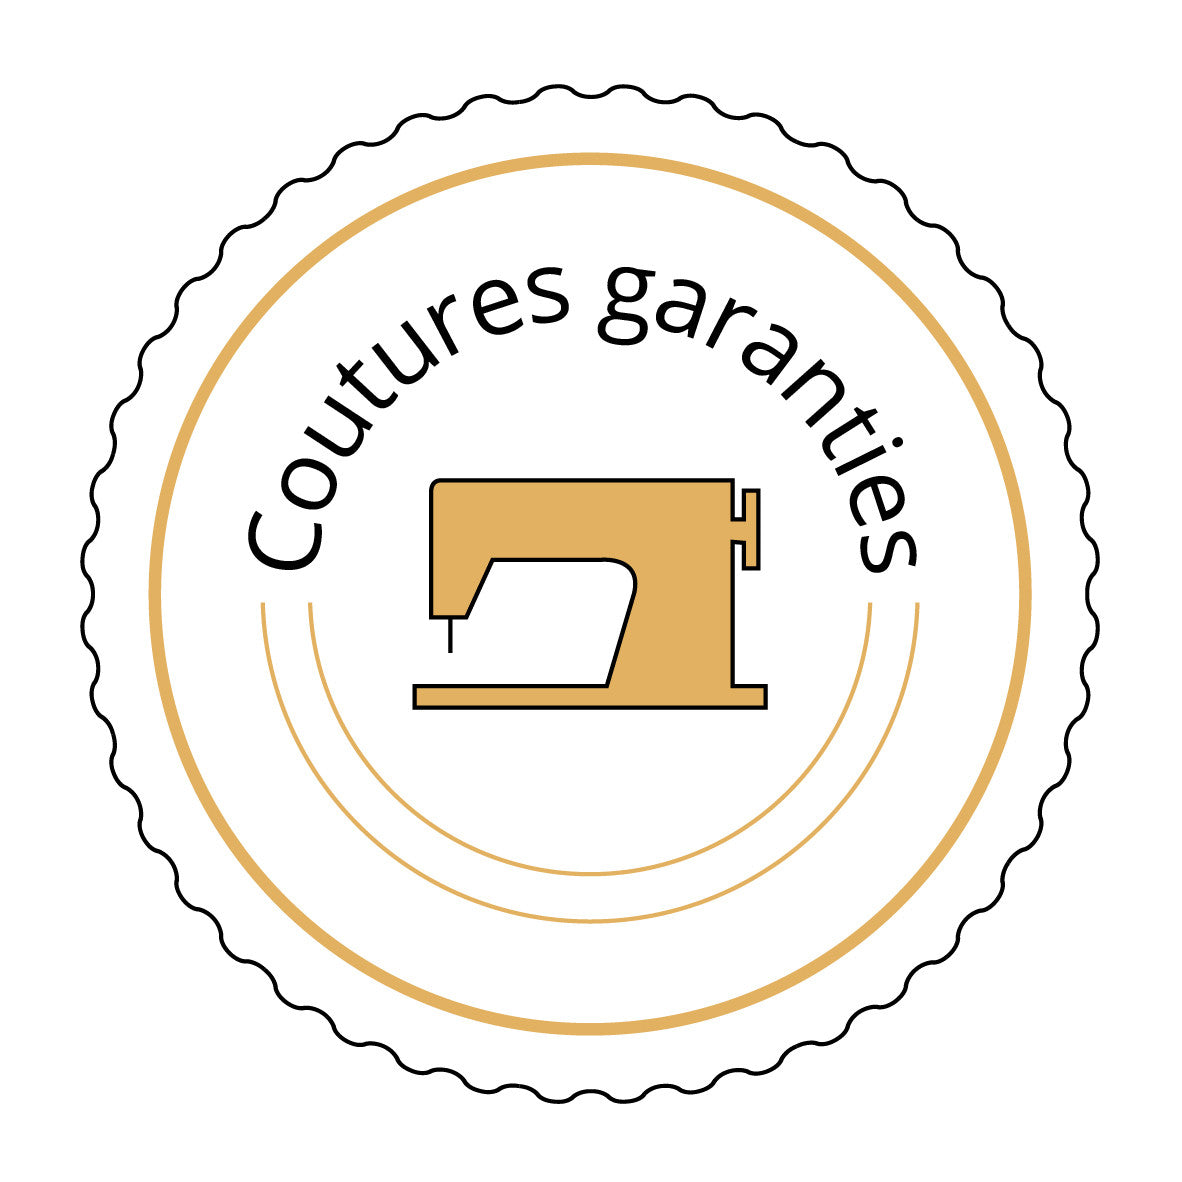 Nos coutures sont garanties à vie - slow fashion